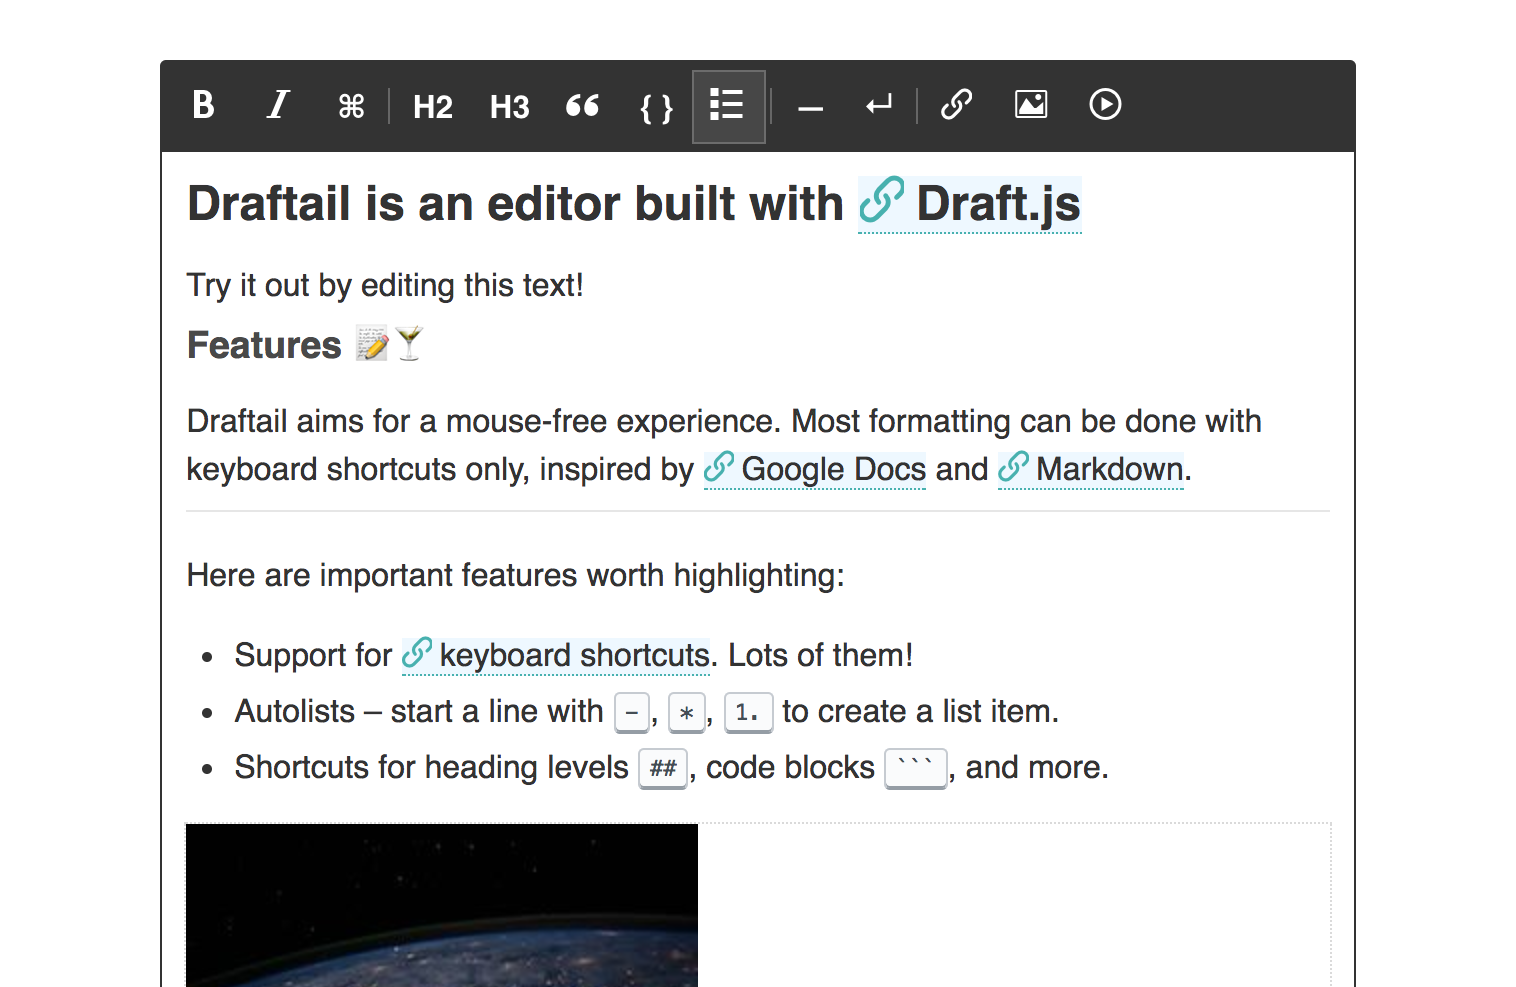 draftail/README md at master · springload/draftail · GitHub